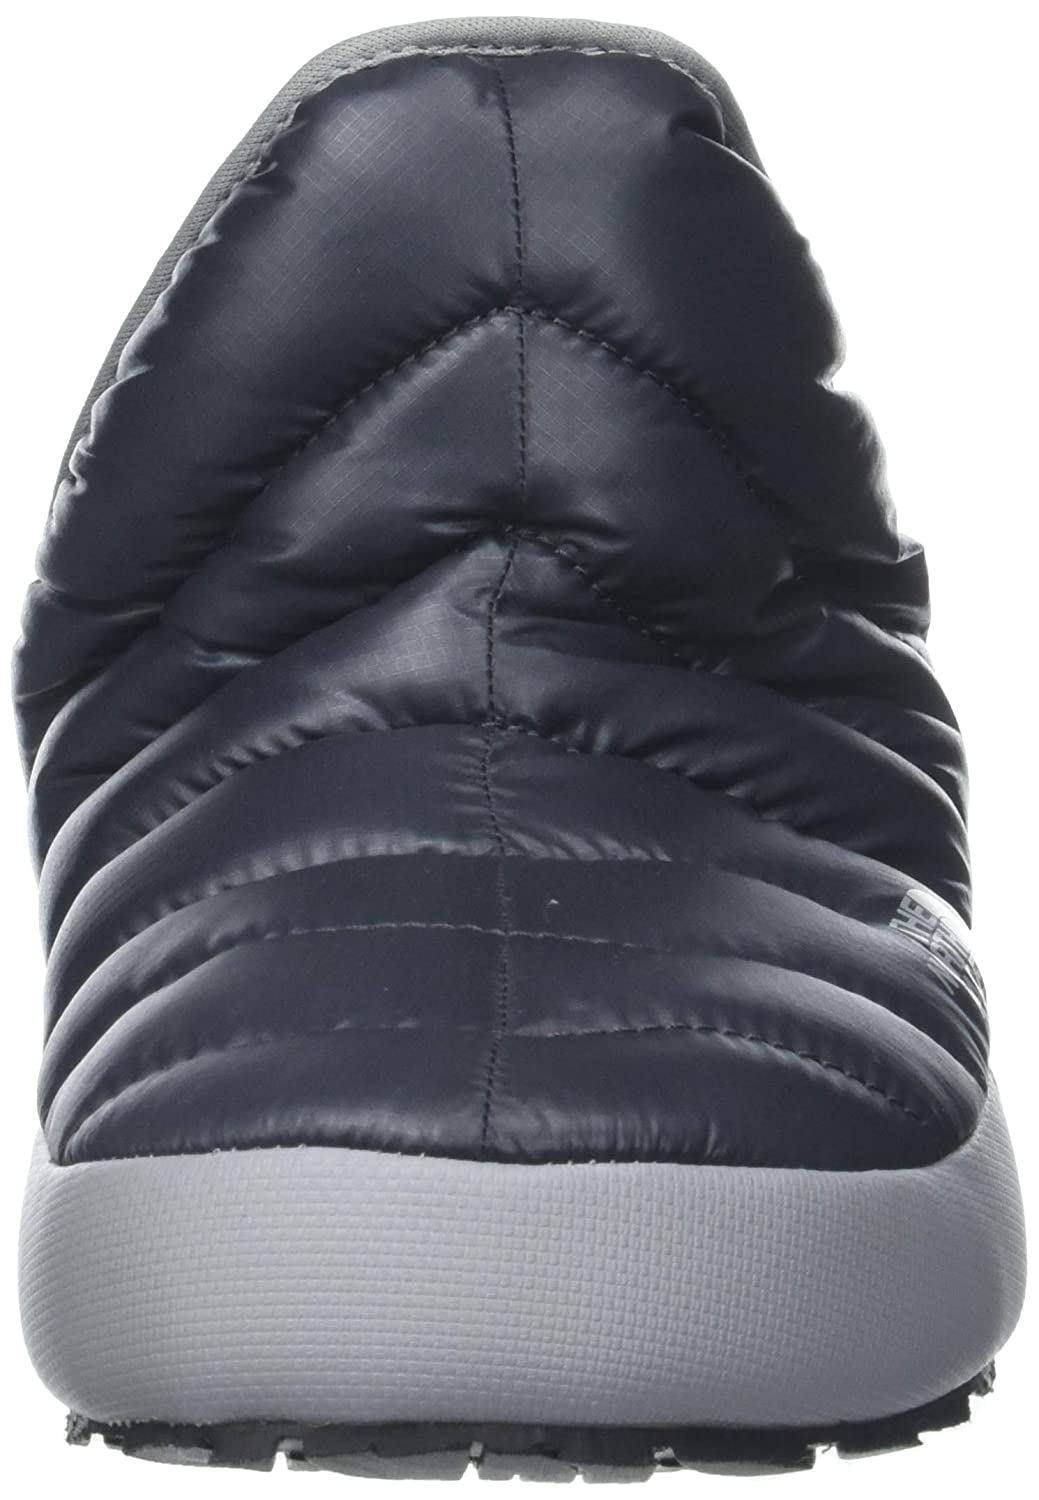 THE NORTH FACE Herren Thermoball Thermoball Thermoball Traction Schneestiefel, 26ad62